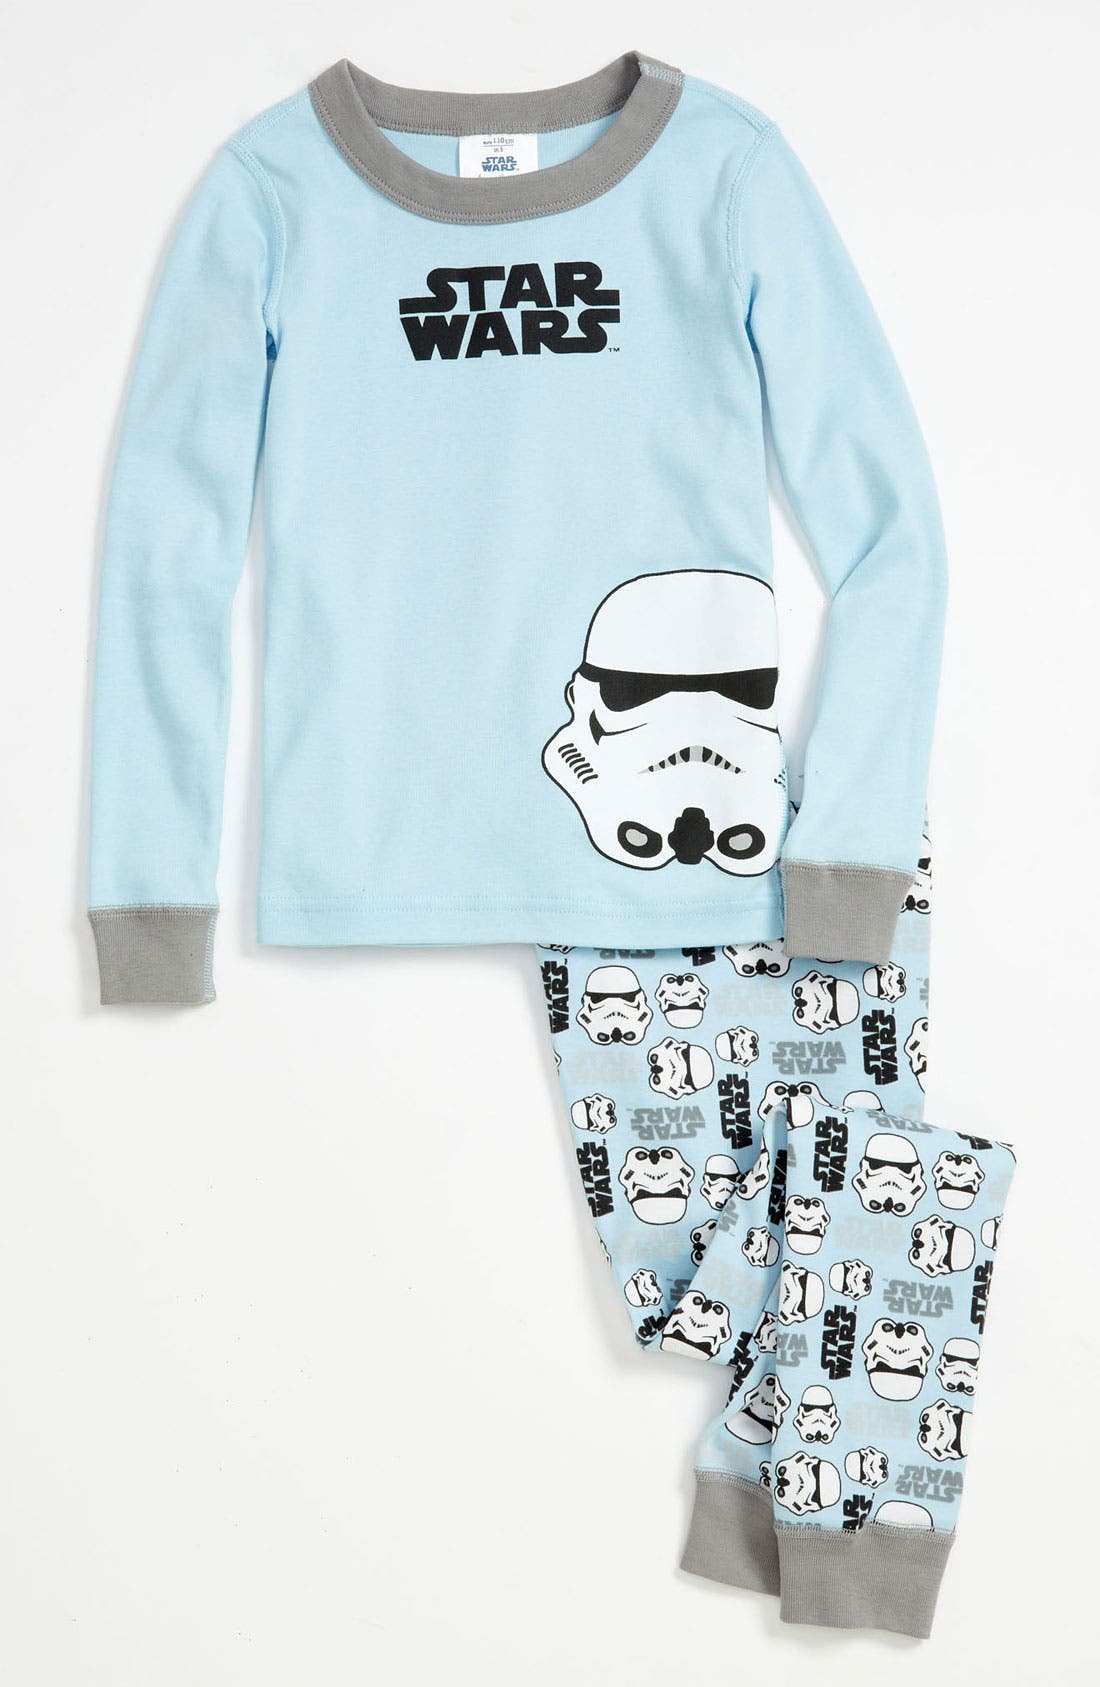 Main Image - Hanna Andersson 'Stormtrooper' Two Piece Fitted Organic Cotton Pajamas (Toddler)